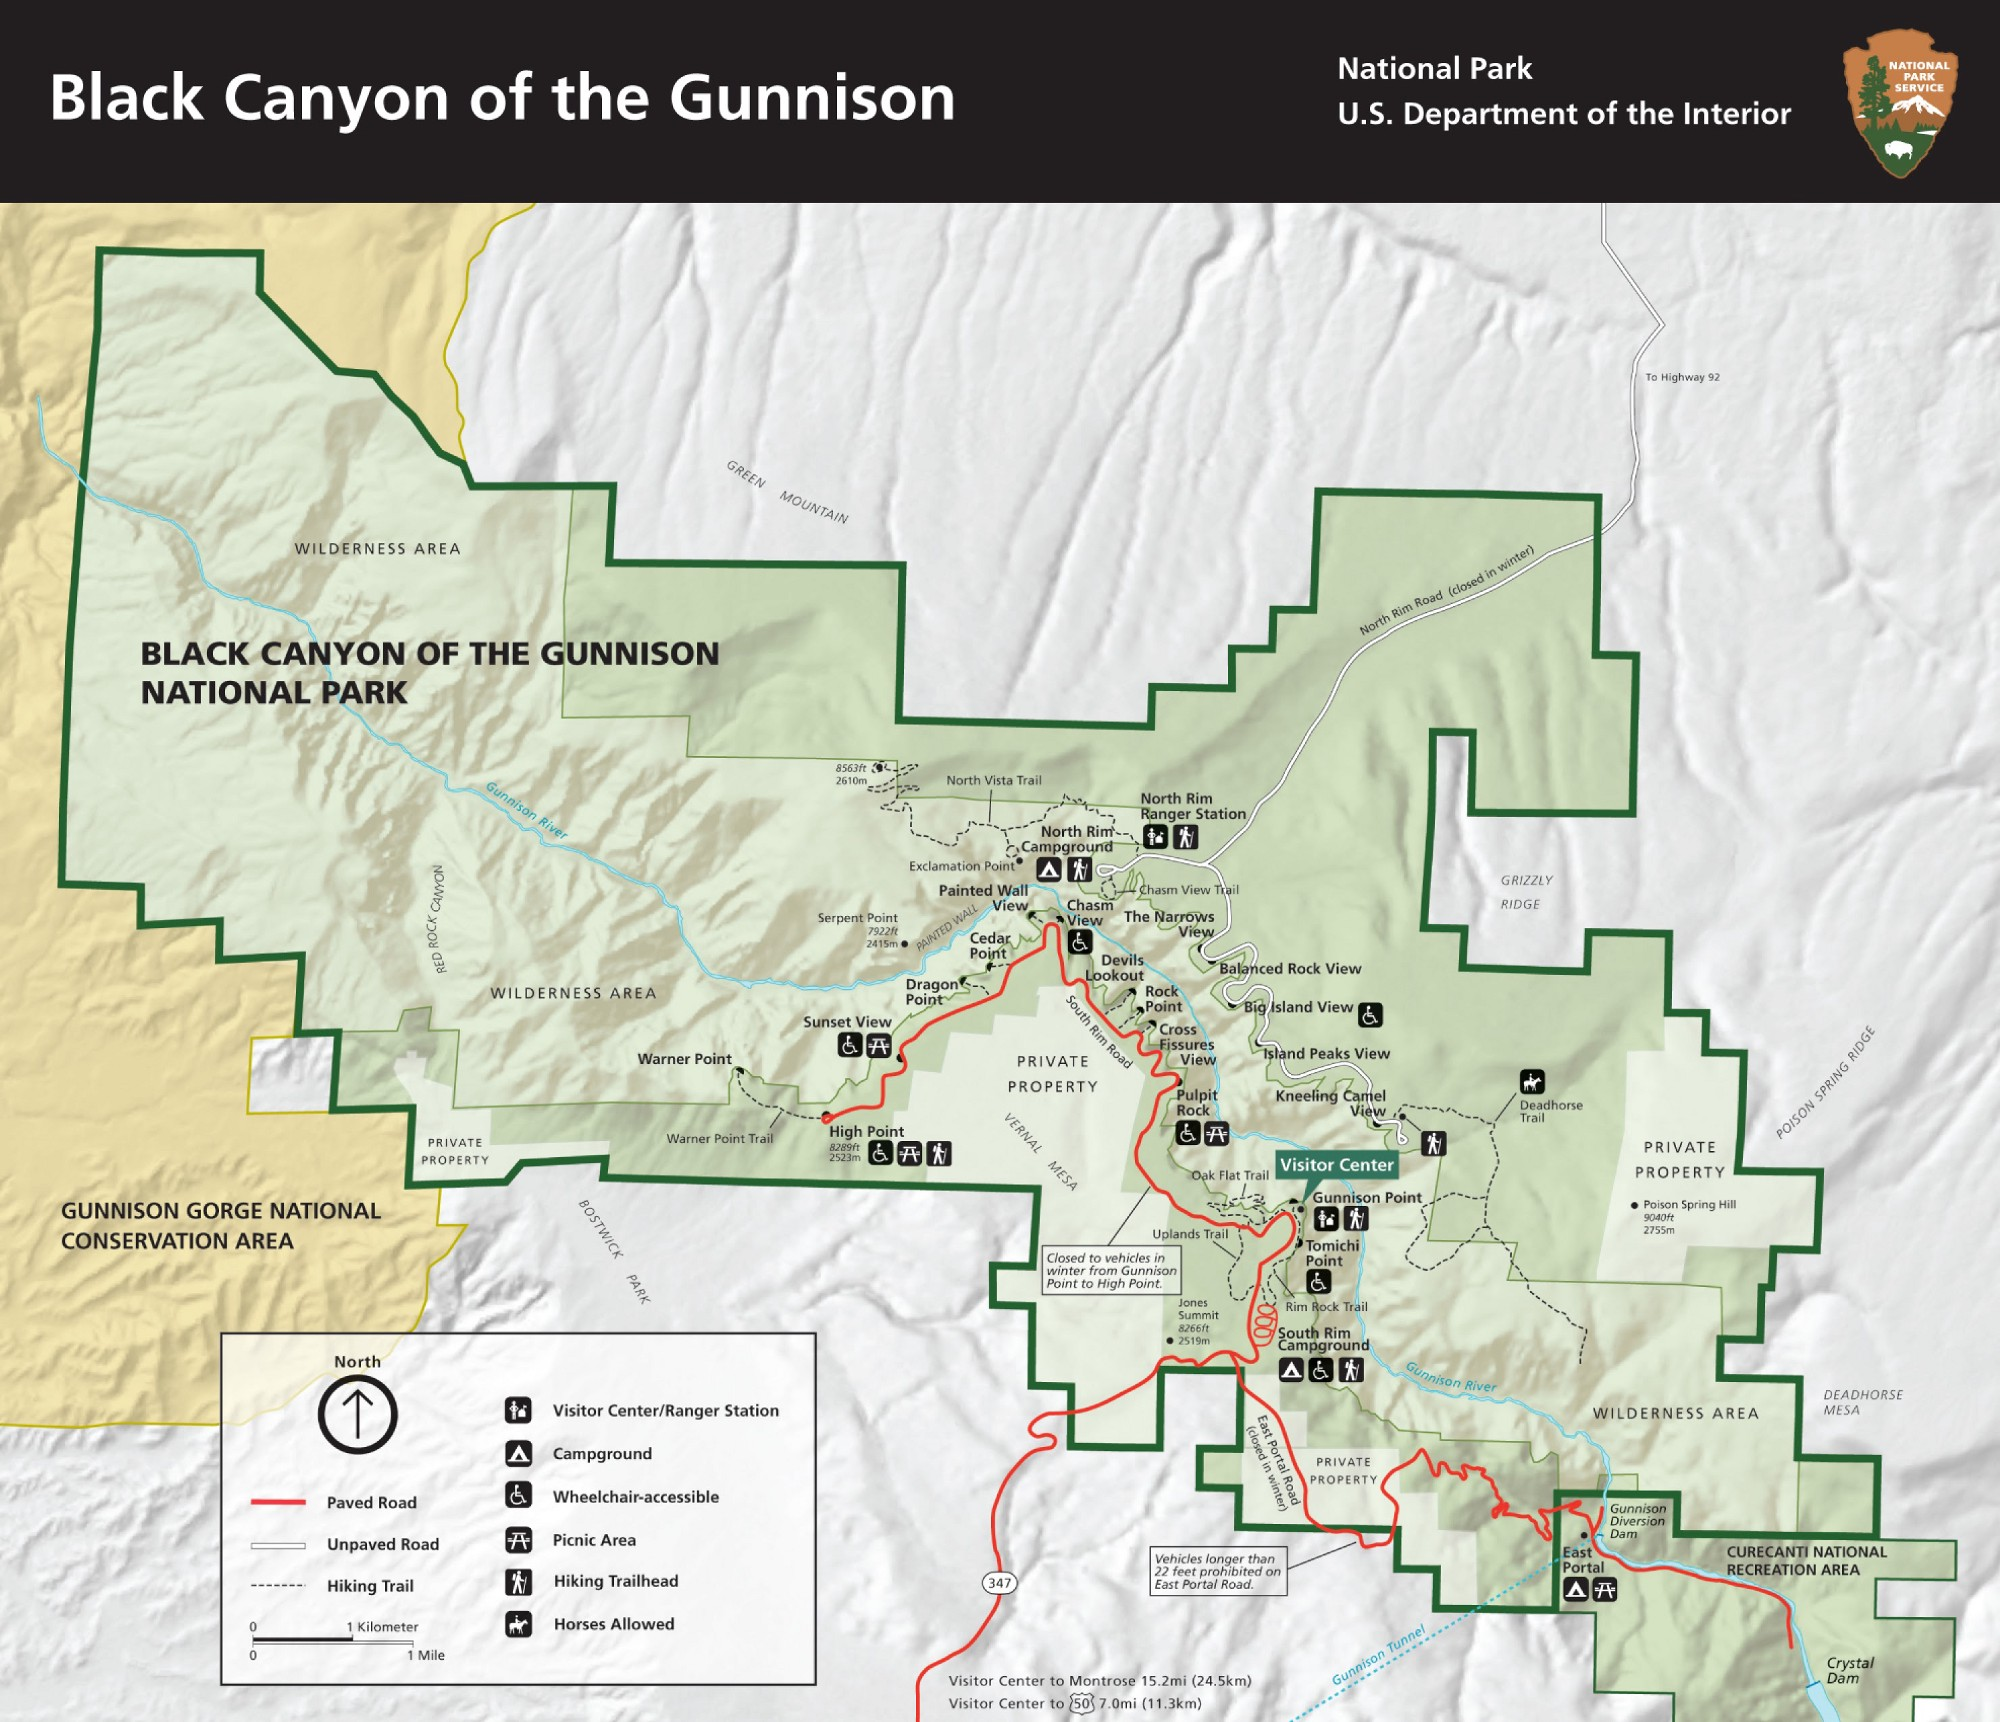 Black Canyon of the Gunnison National Park journal Geographica